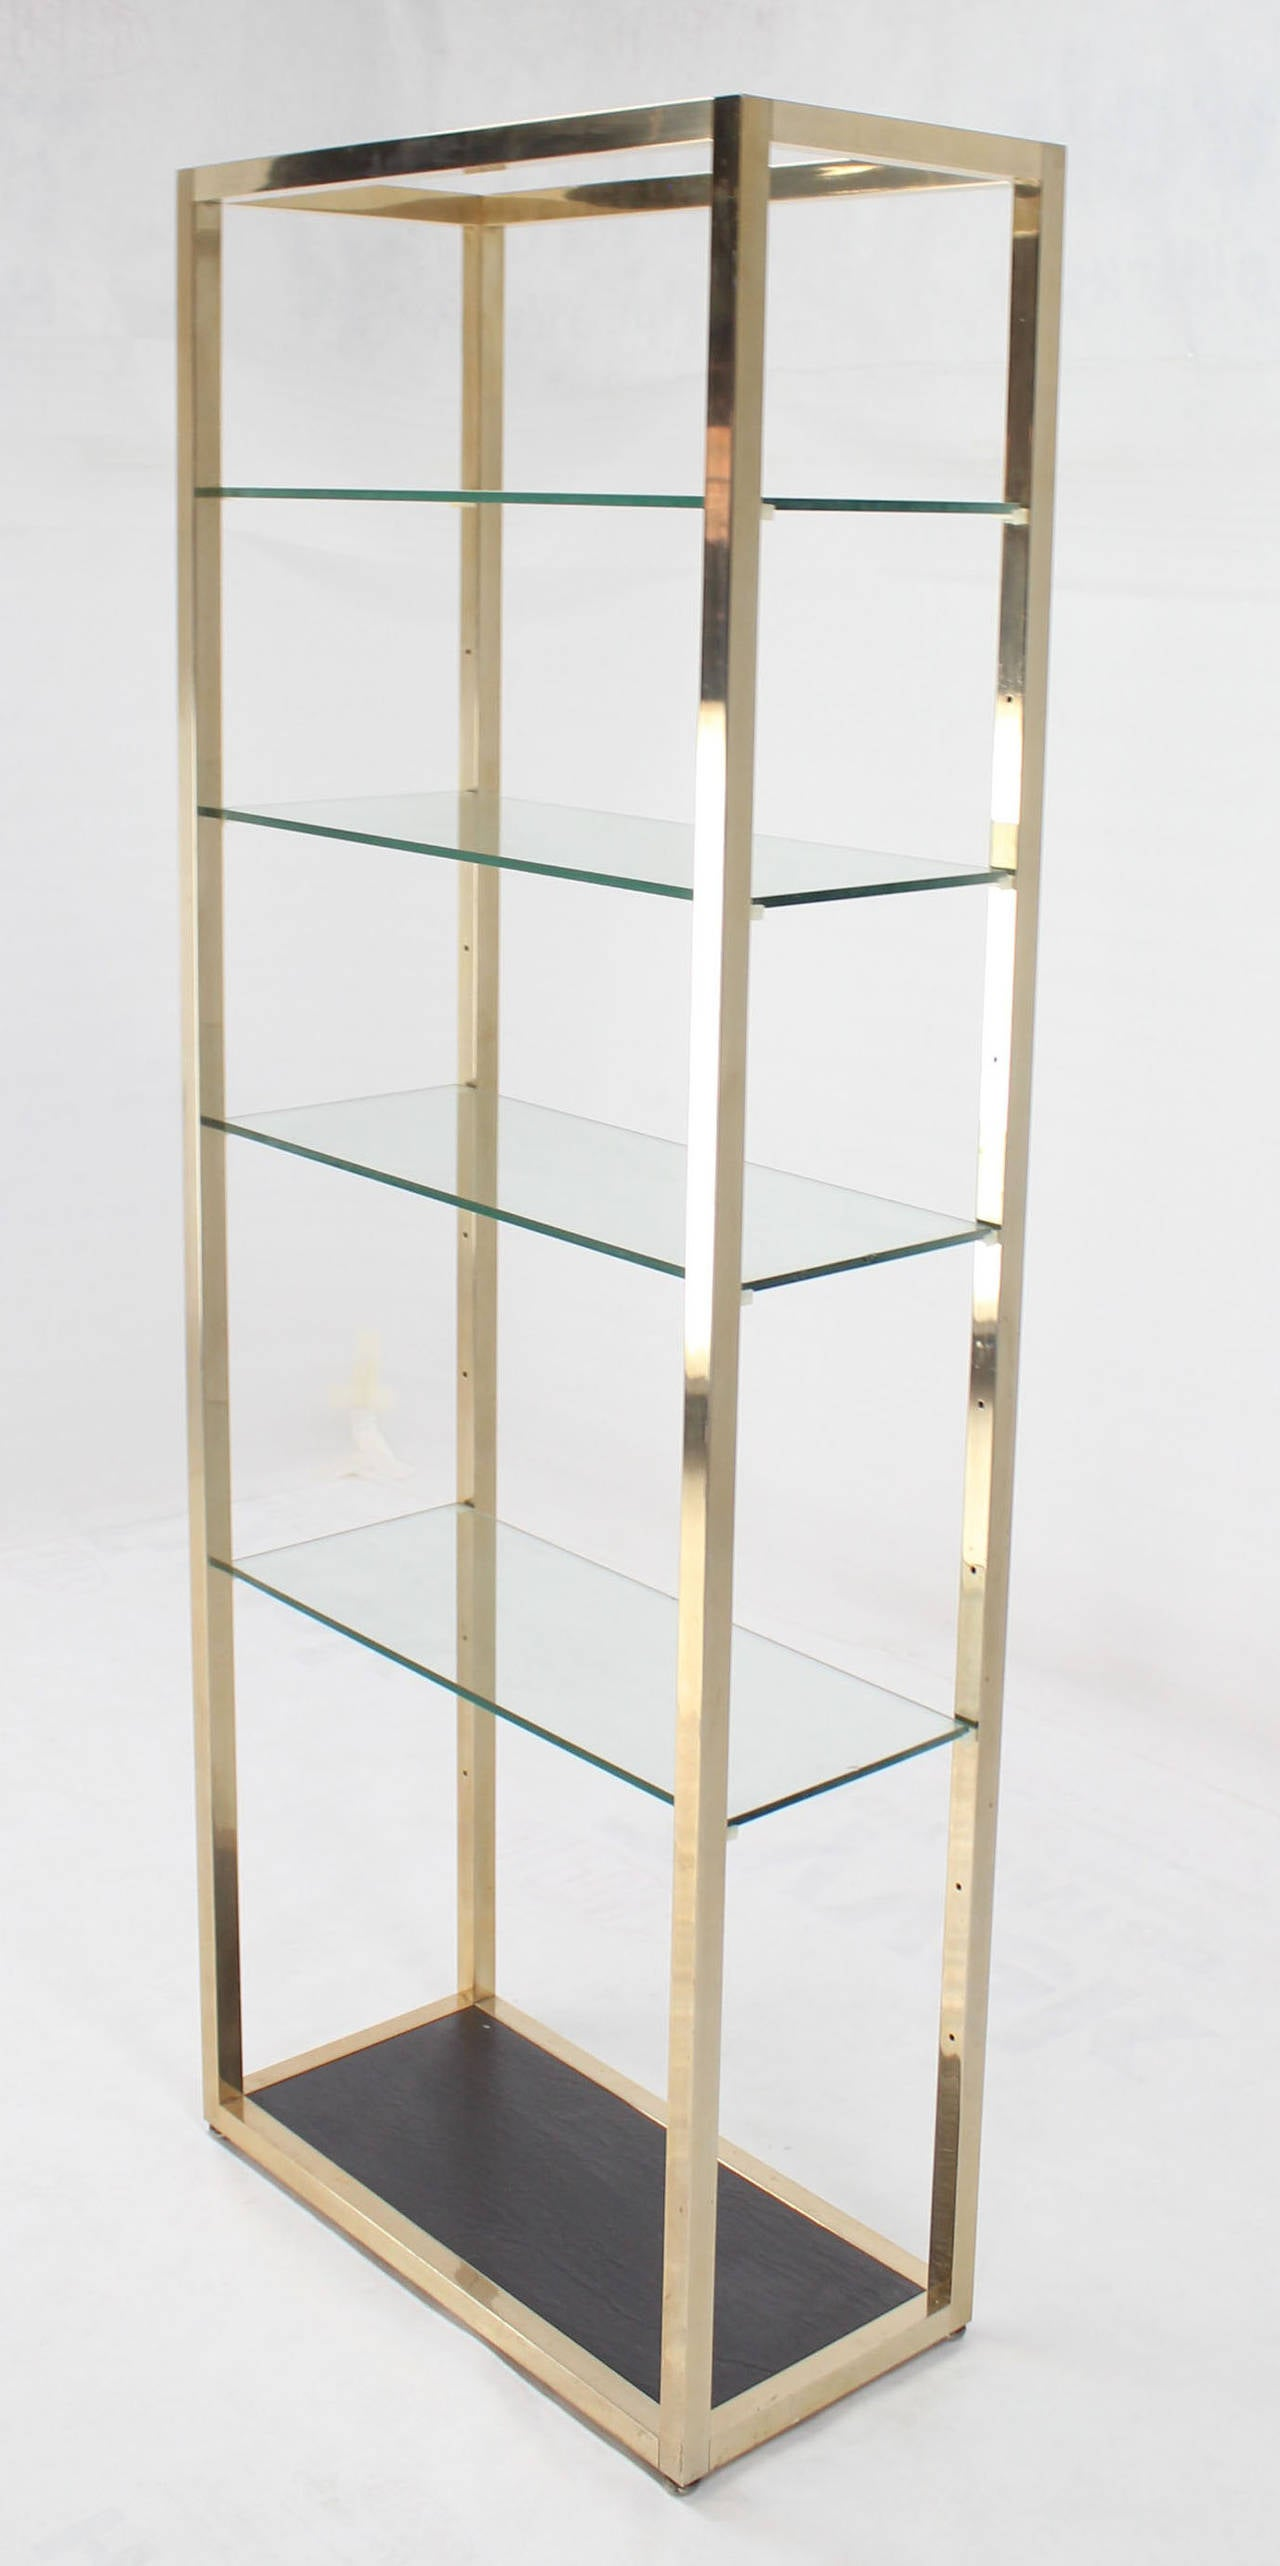 midcentury modern glass and metal etagere for sale at stdibs - midcentury modern glass and metal etagere